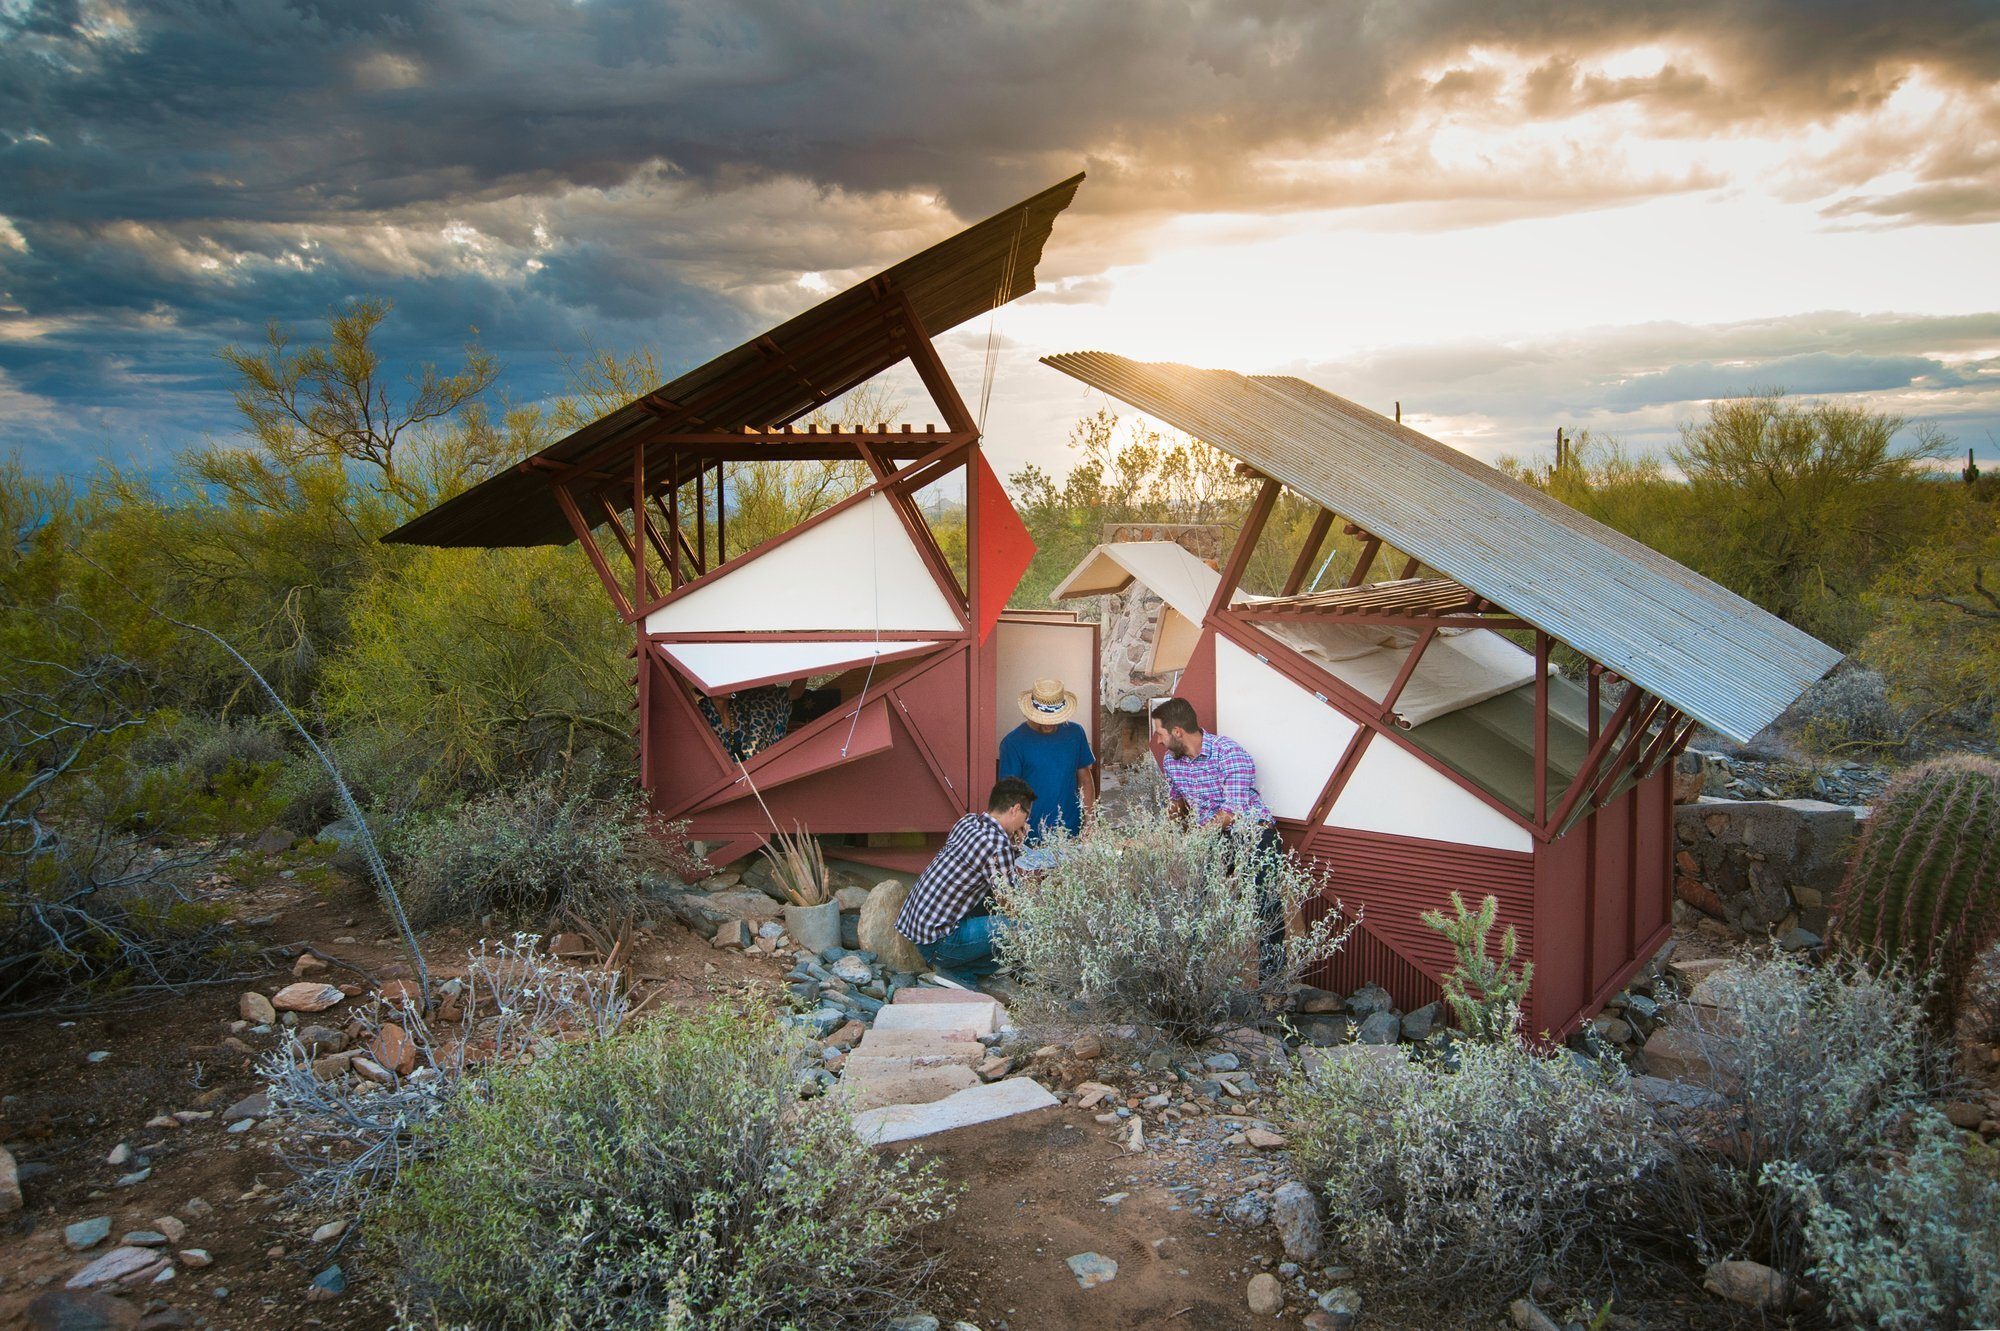 Little Shelters Students Build Desert Shelters On A